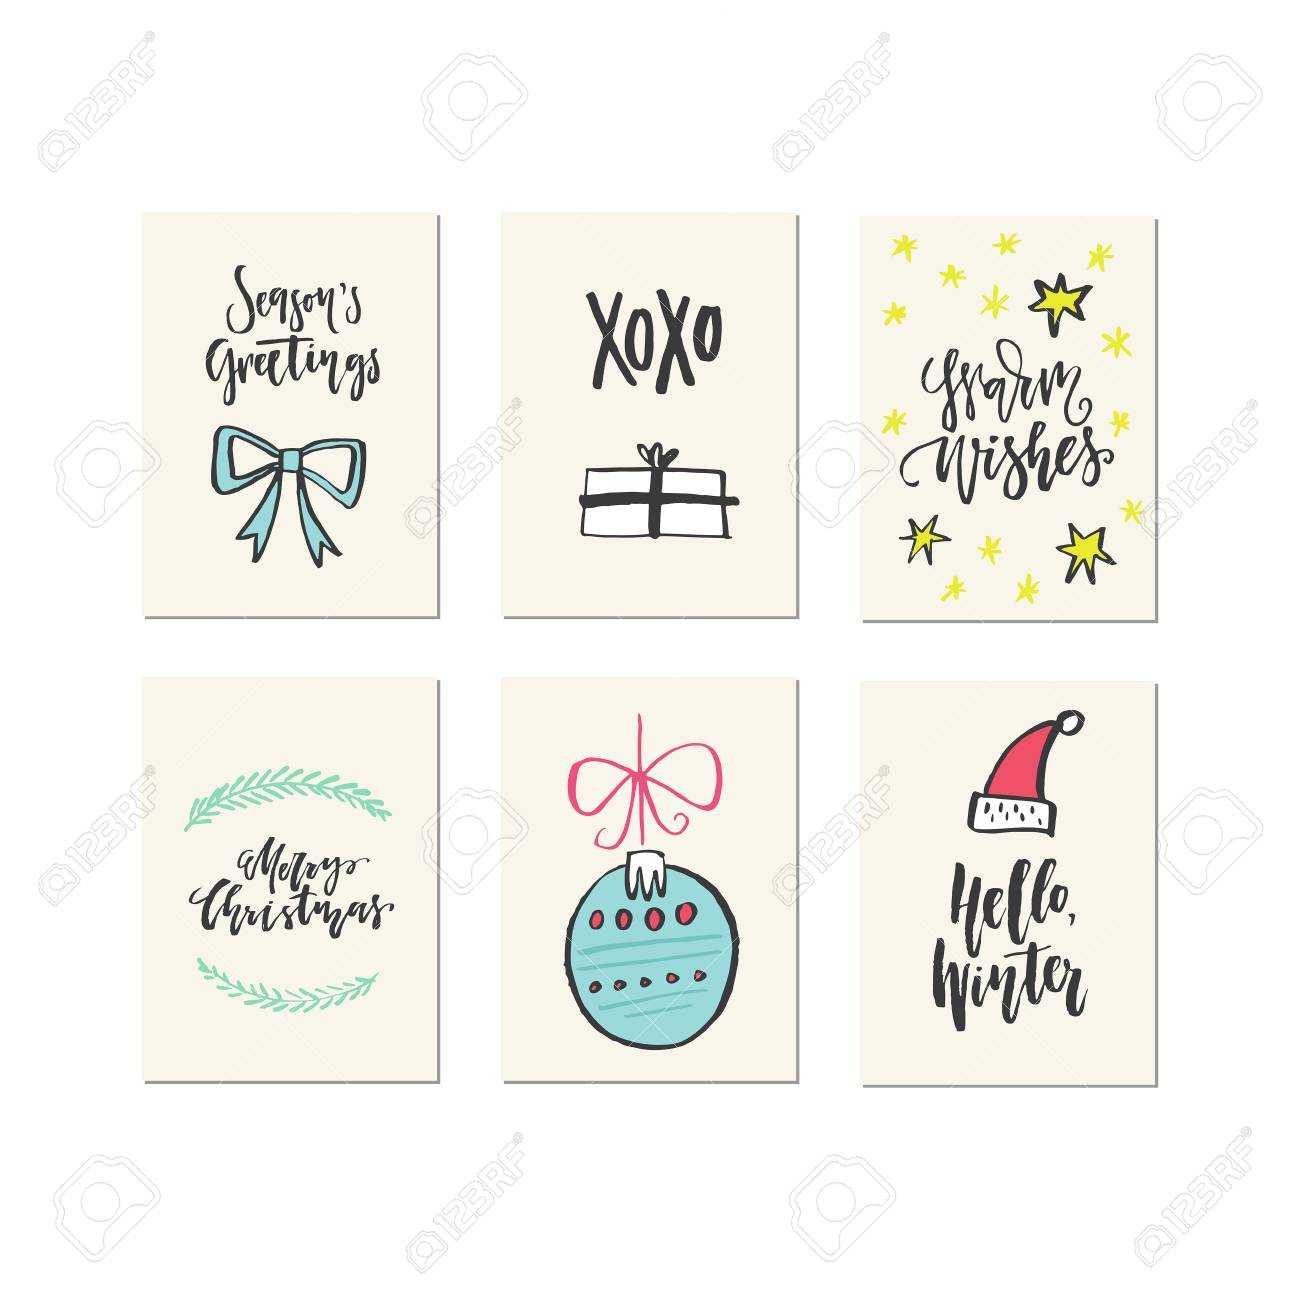 Big Collection Of Unique Christmas Or New Year Card Templates.. Intended For Christmas Note Card Templates